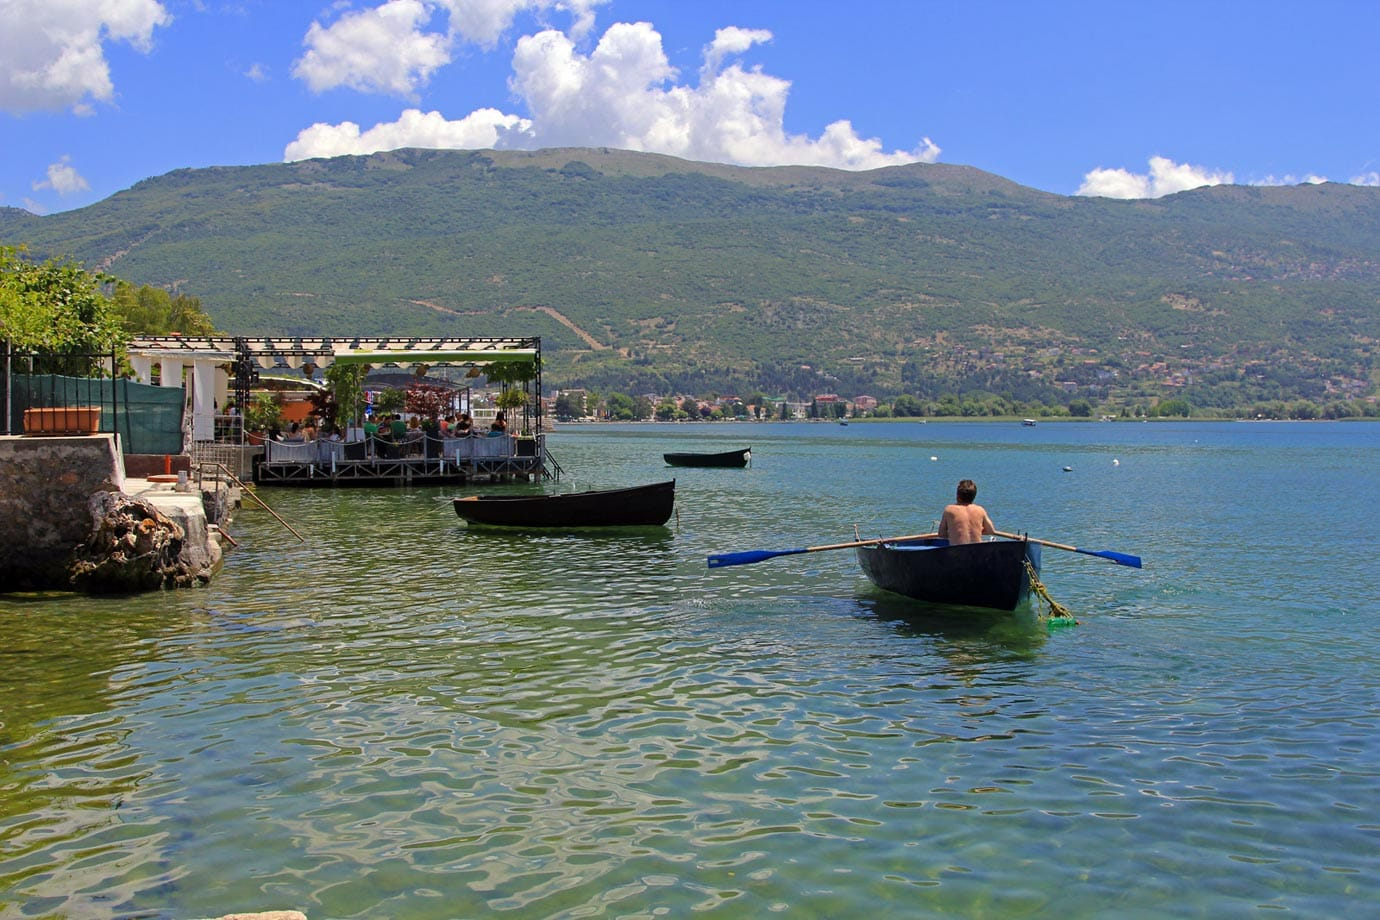 Ohrid is a lakeside town in Macedonia, very close to the border of Albania